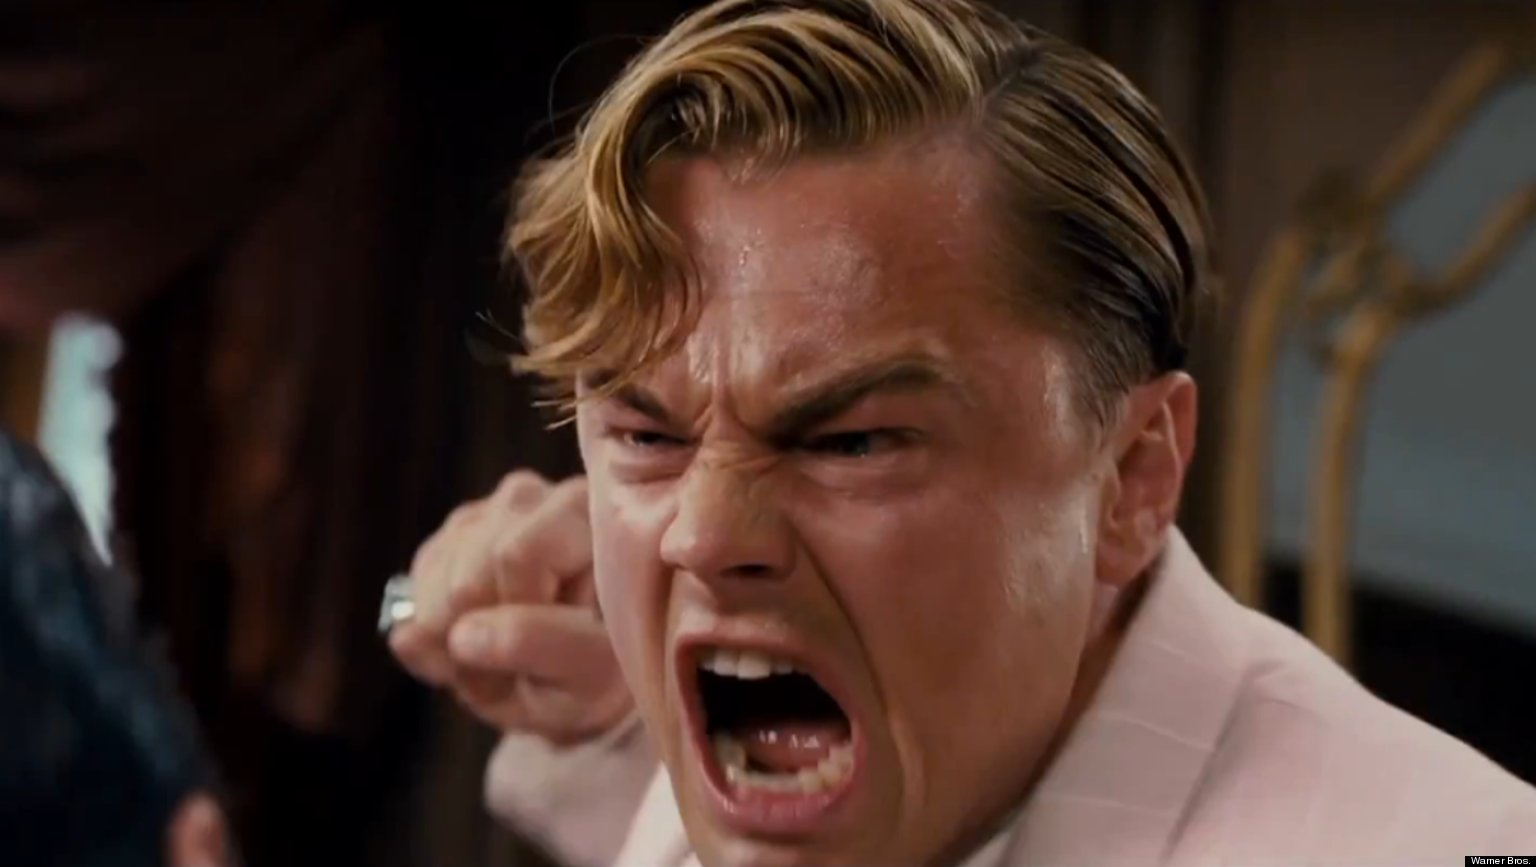 Leonardo DiCaprio Yelling: The Supercut (VIDEO)